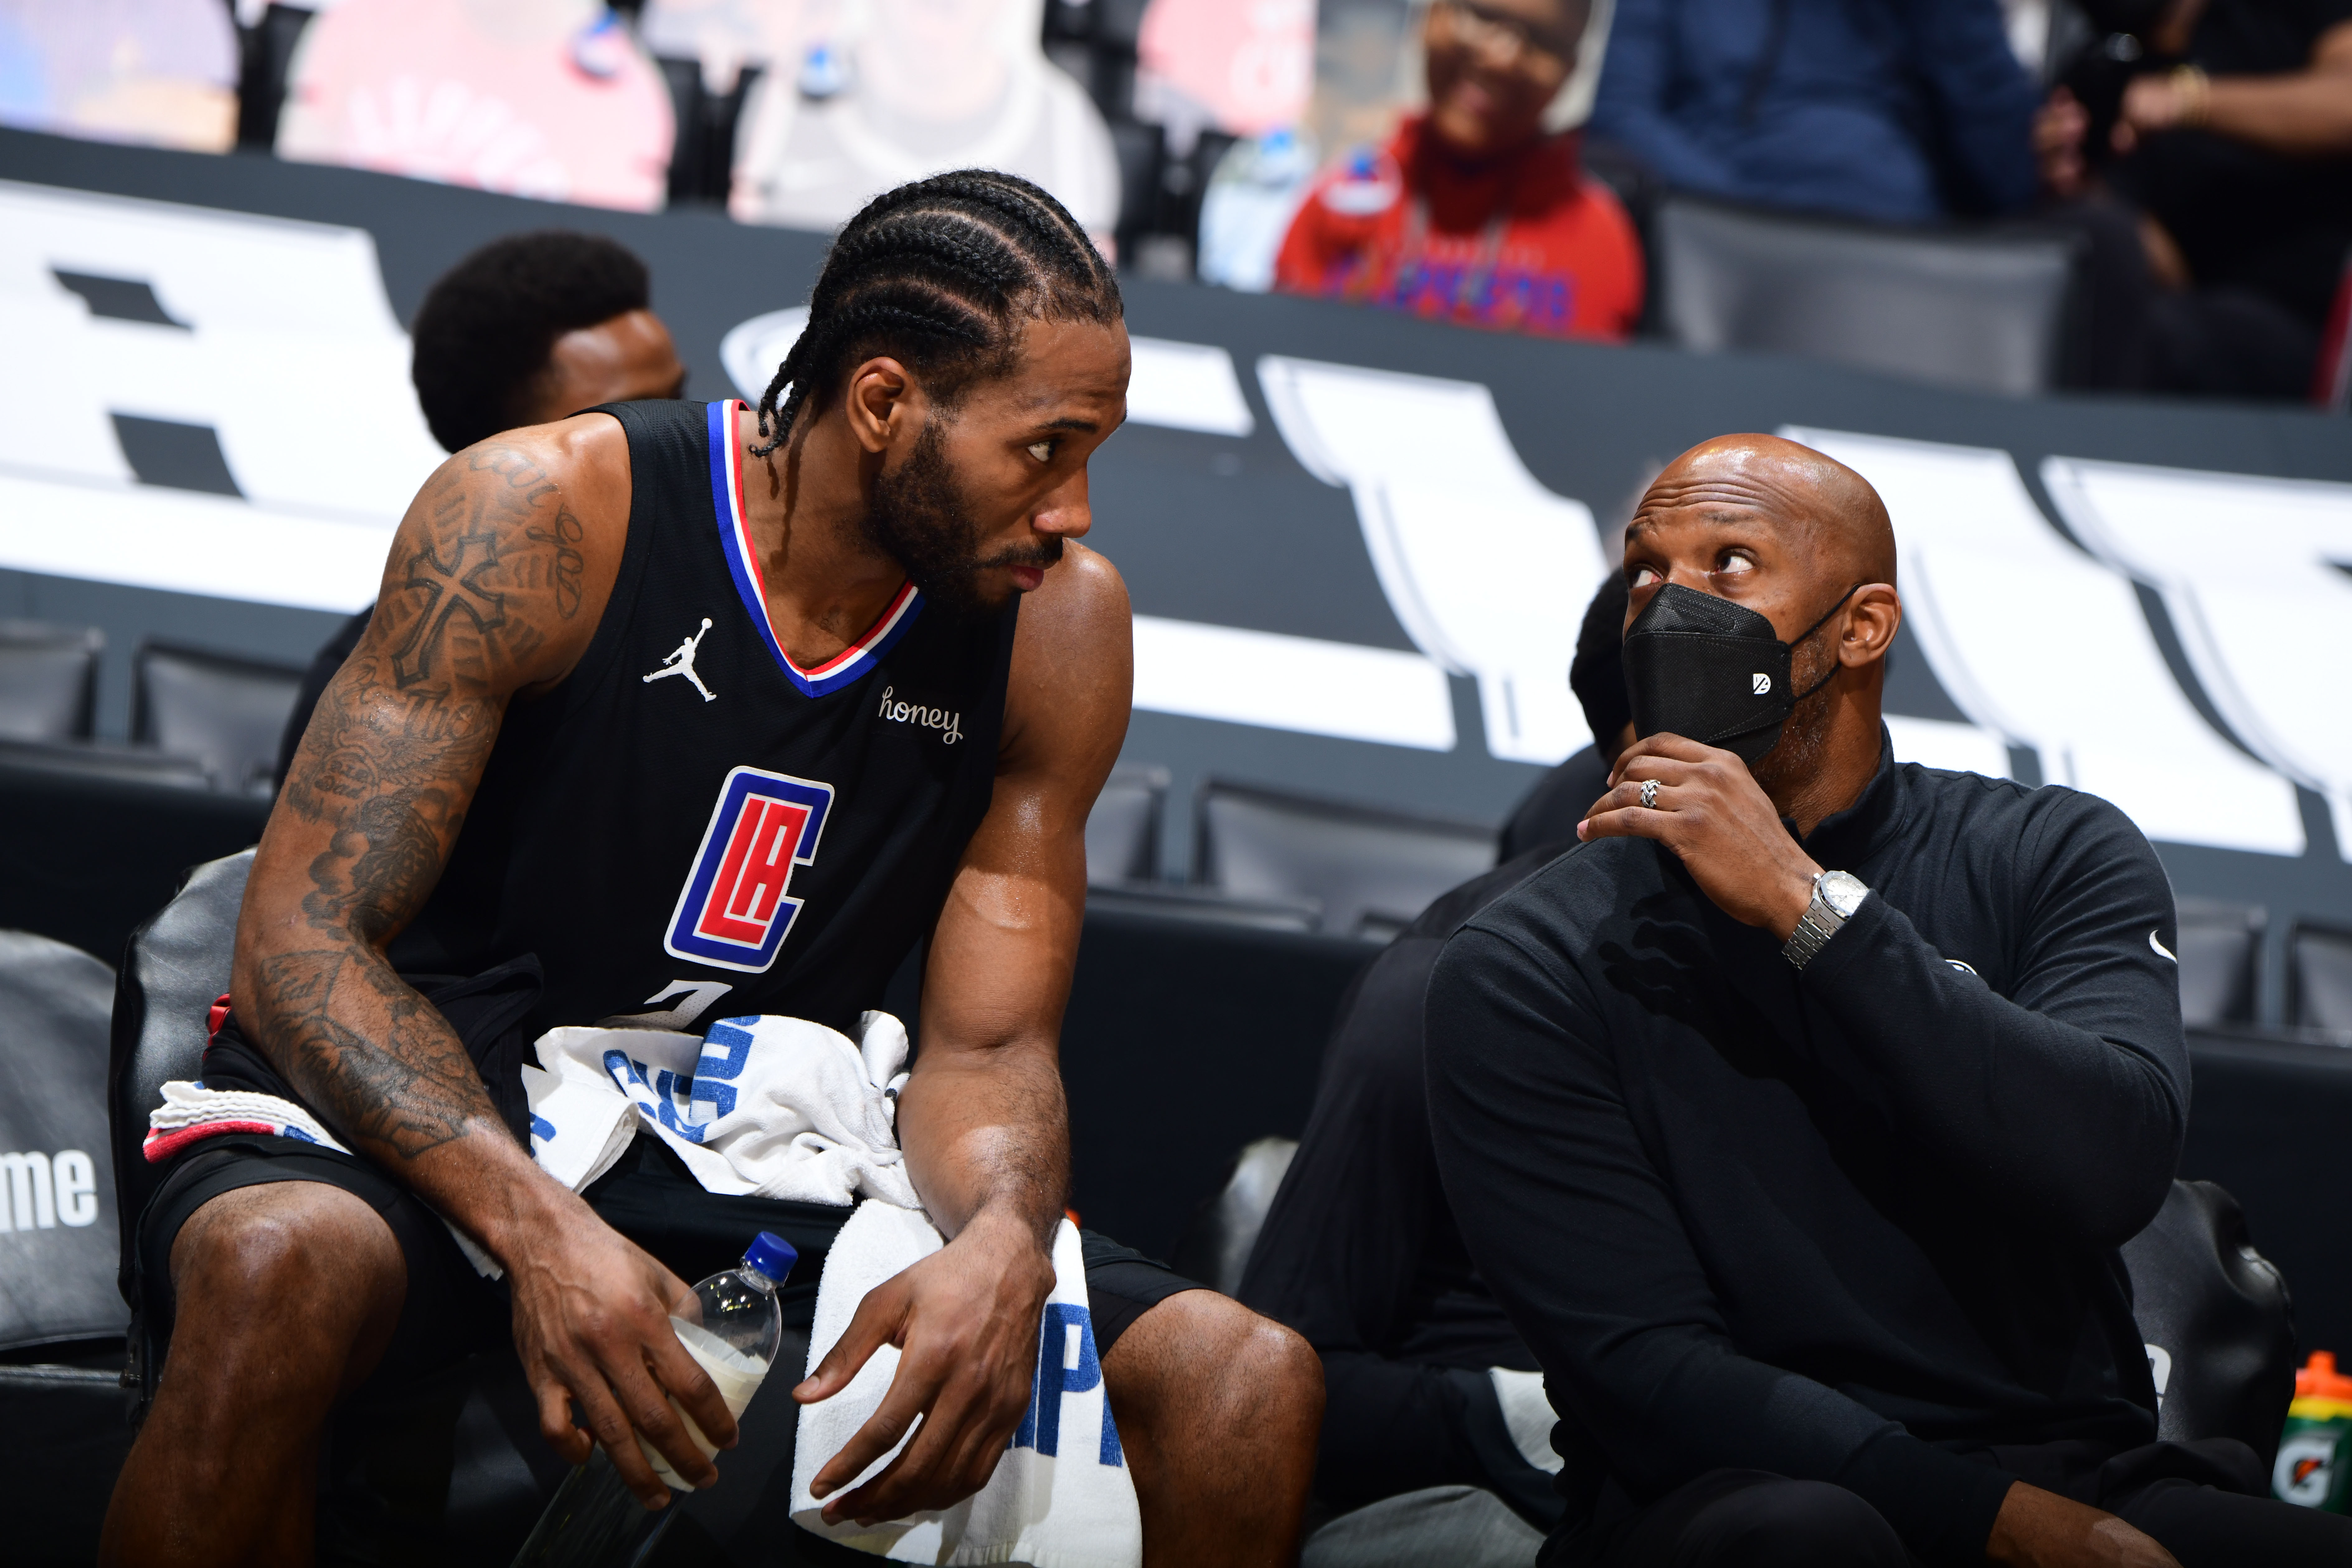 Assistant Coach Chauncey Billups of the LA Clippers talks with Kawhi Leonard #2 during Round 2, Game 4 of 2021 NBA Playoffs on June 14, 2021 at STAPLES Center in Los Angeles, California.